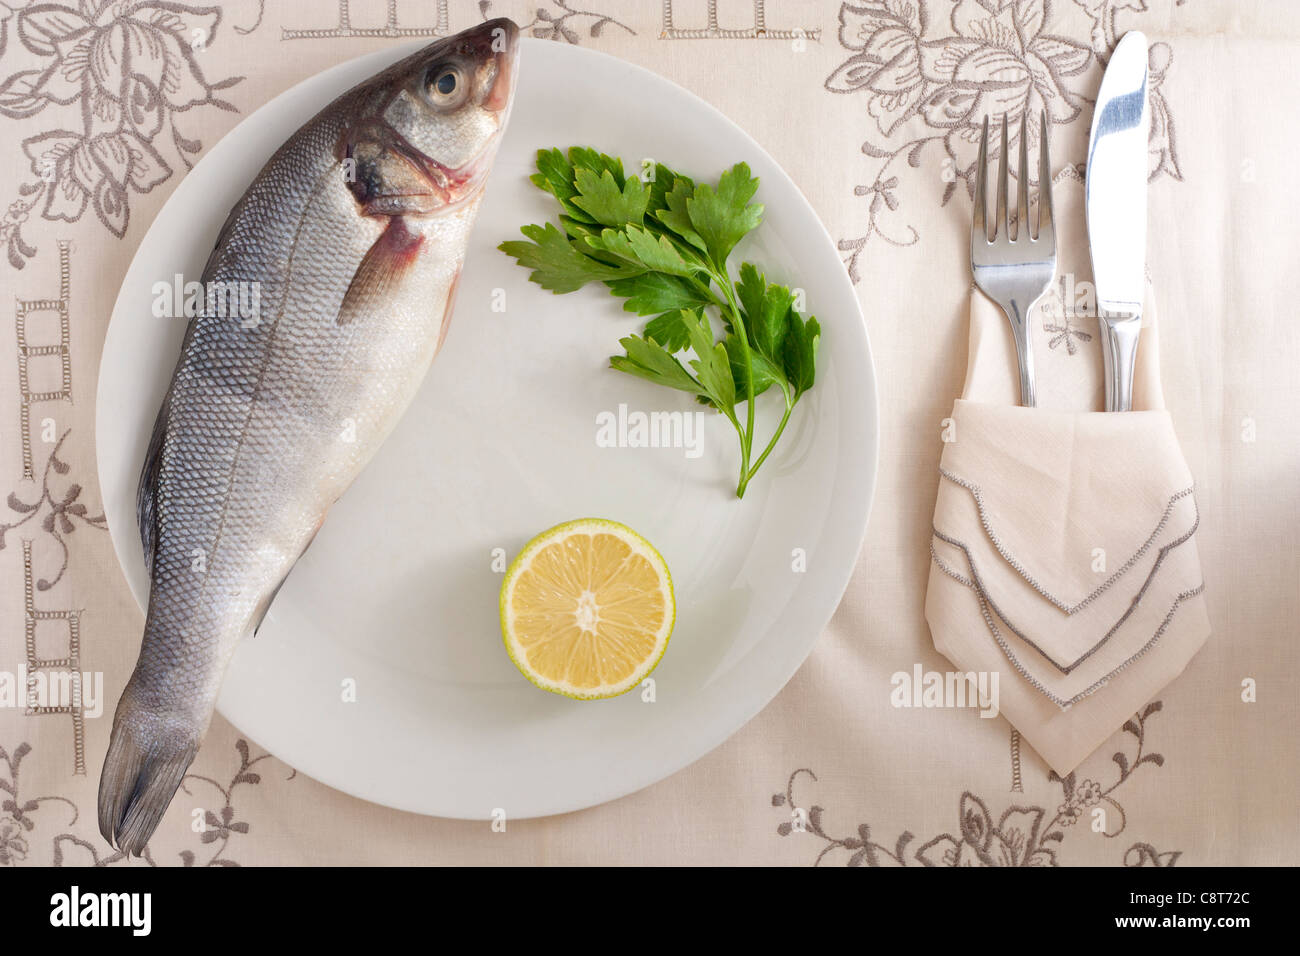 Bass with Lemon and Parsley - Stock Image